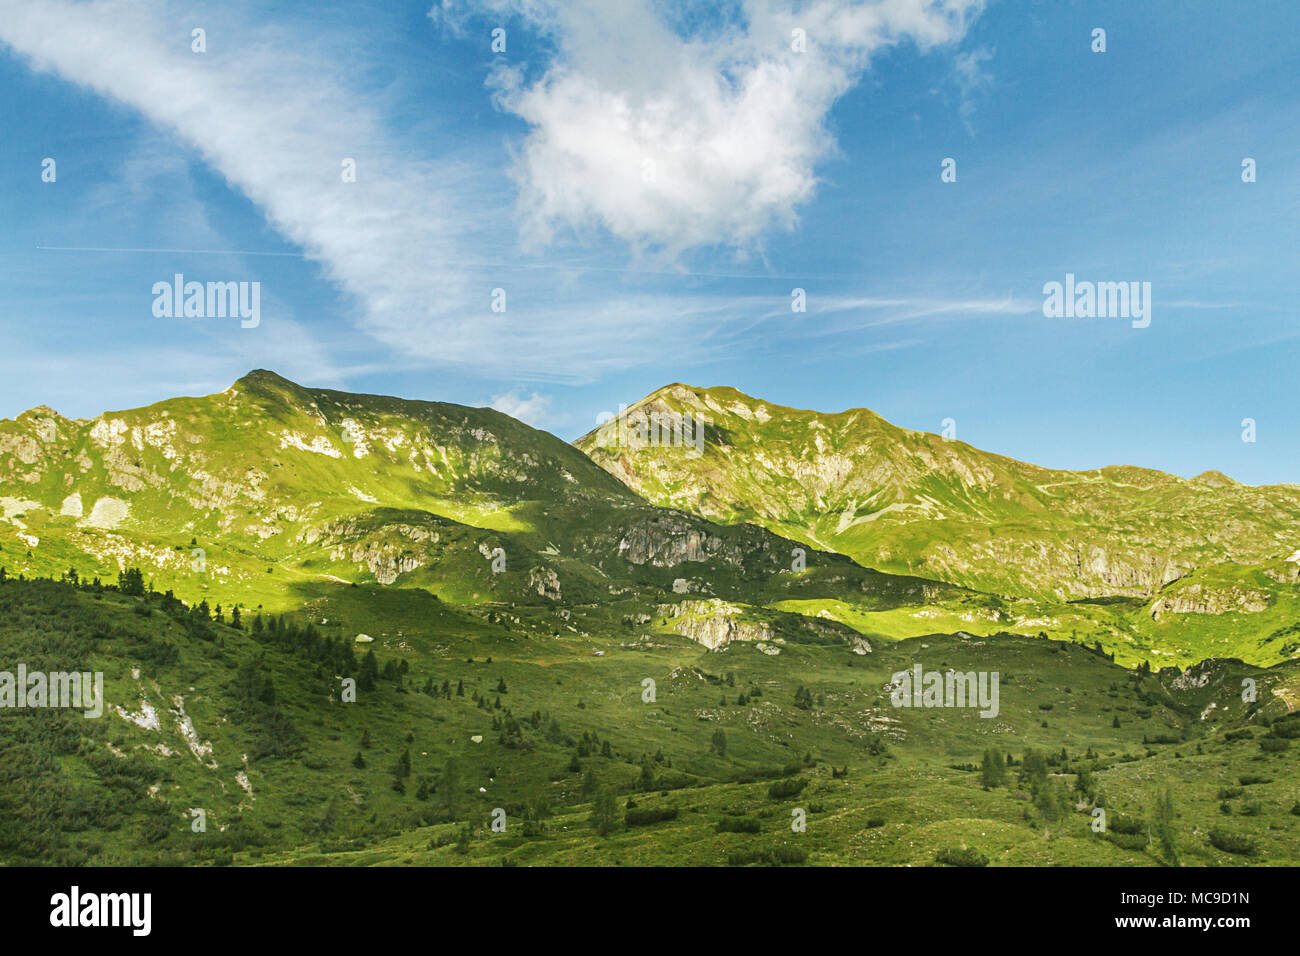 Mountain landscape in Italy. Pass of the cow from Tito Secchi refuge in Valsabbia, Brescia, Italy. - Stock Image